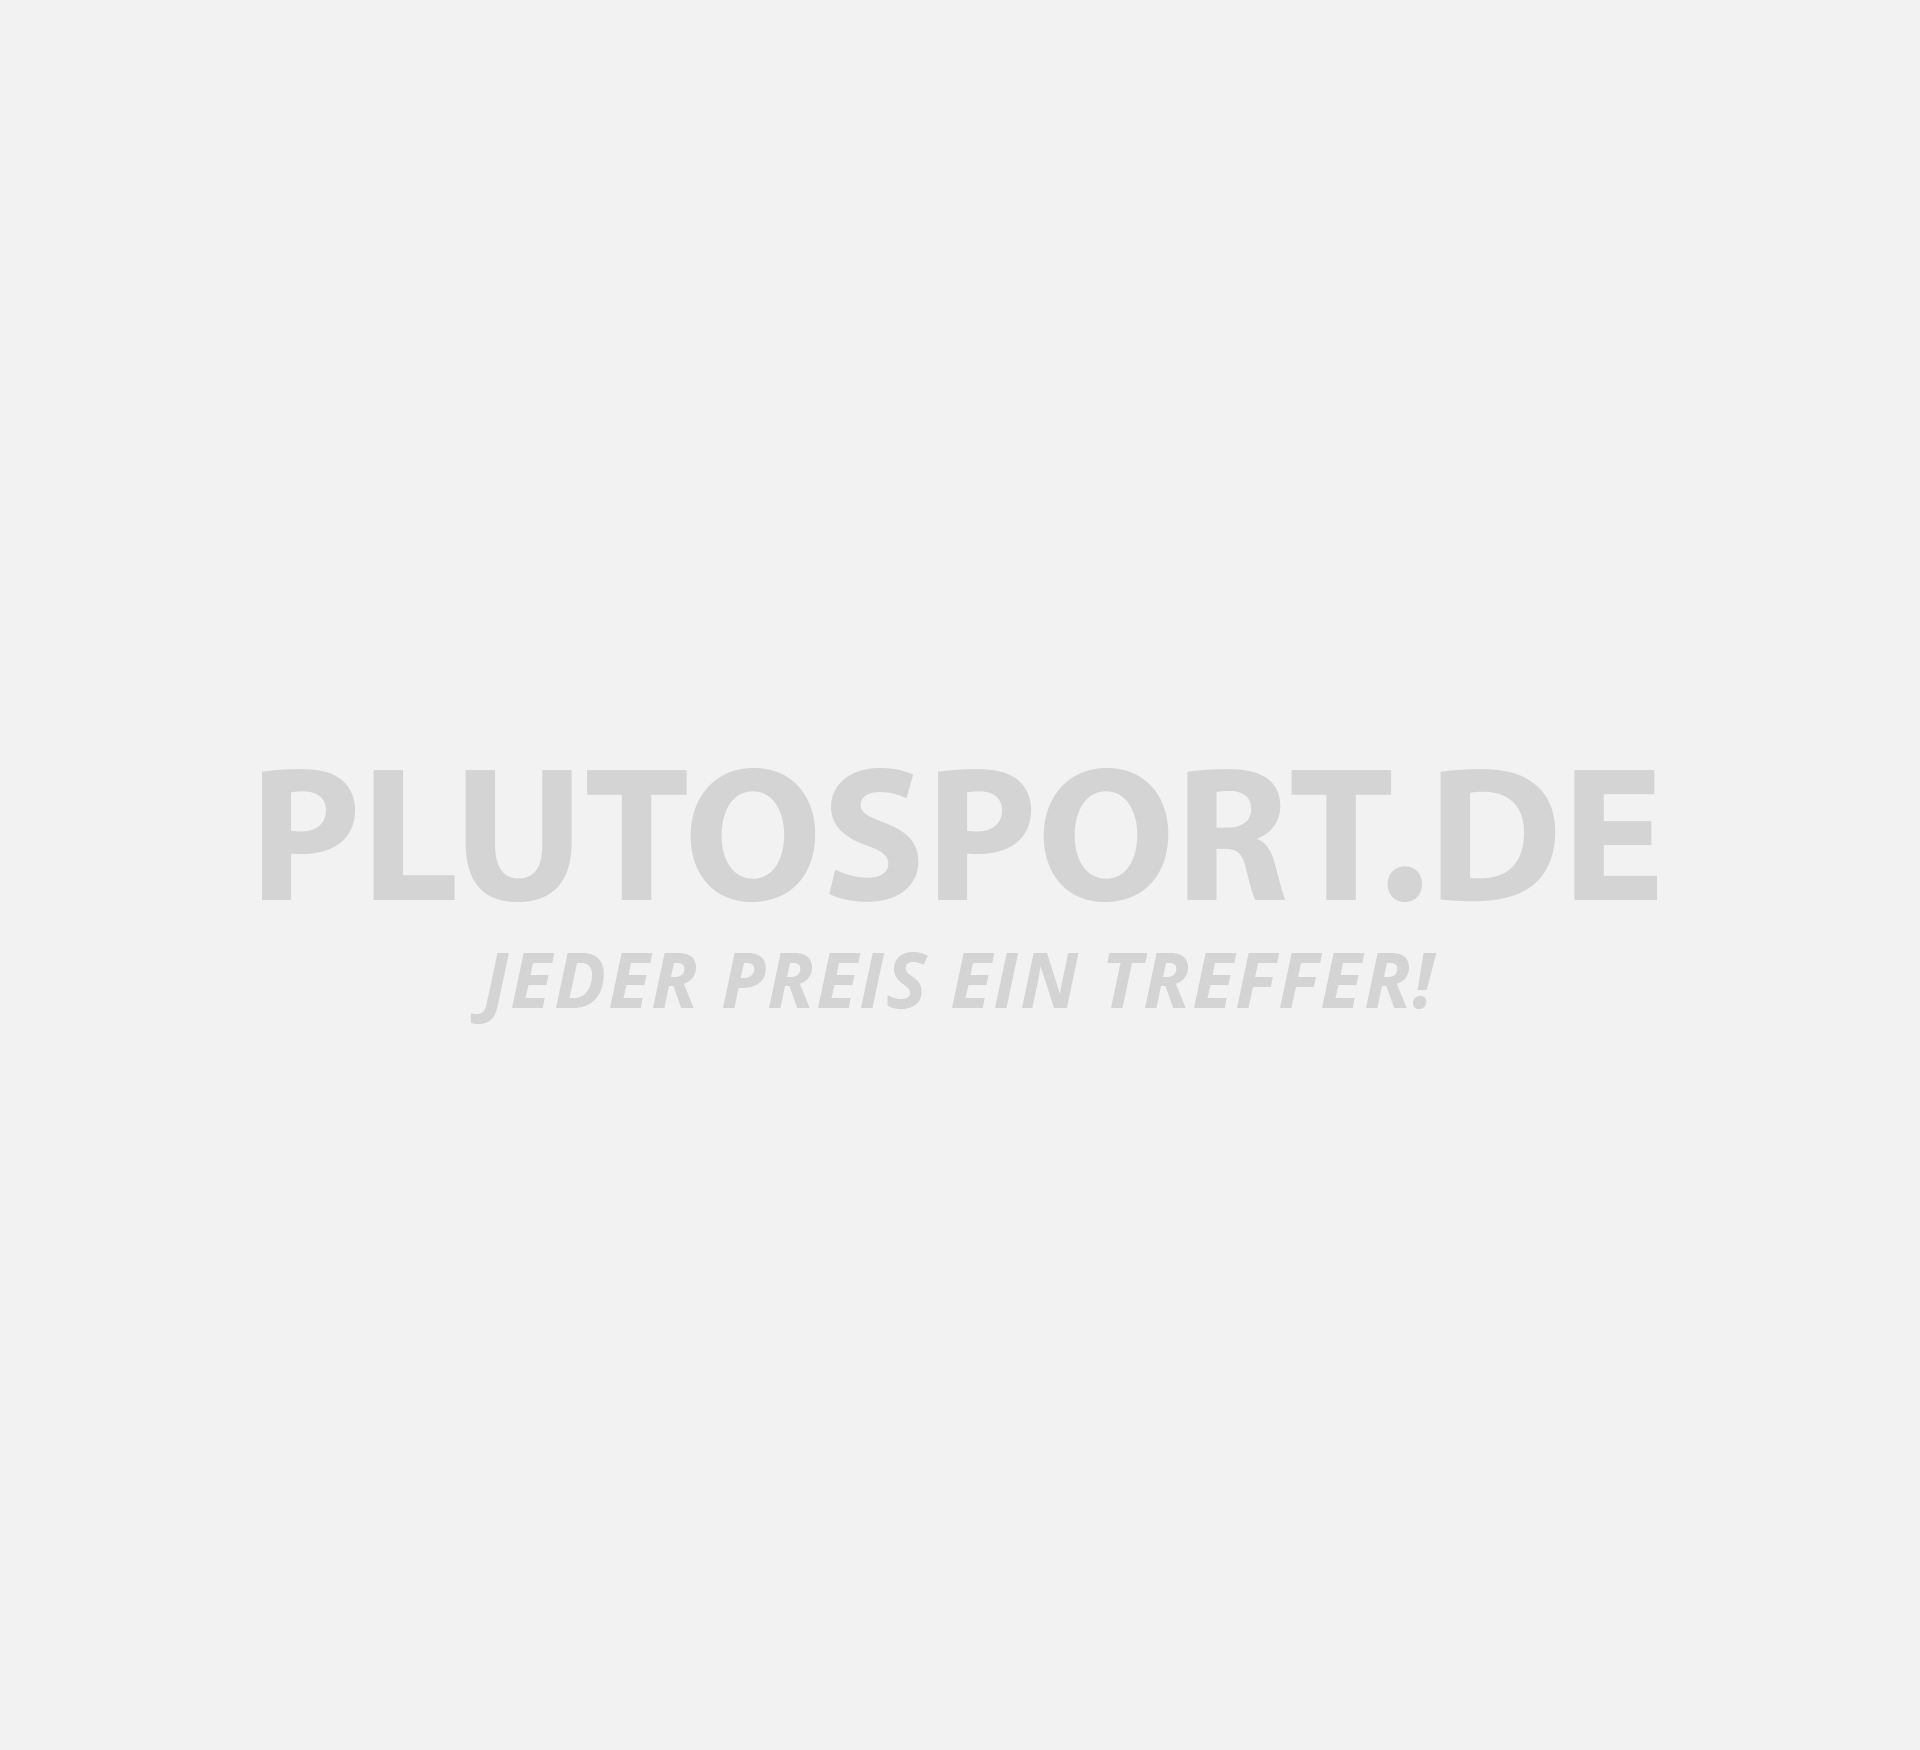 Jack & Jones Intelligence Aruba Fruit Schwimmshort Kinder